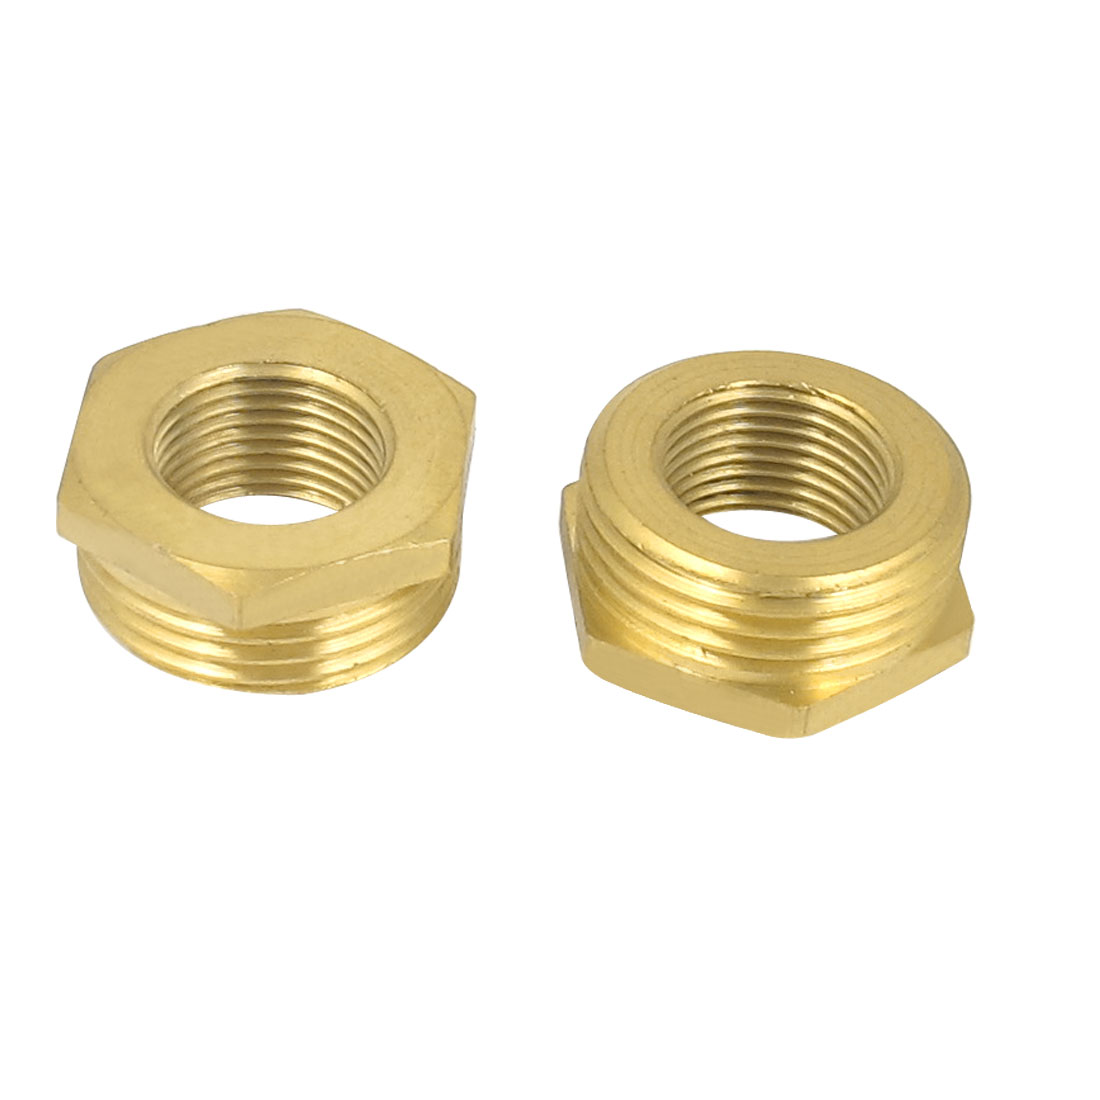 Gold Tone 3/4BSP x 3/8BSP F/M Thread Brass Hex Reducing Bushing Fitting 2pcs